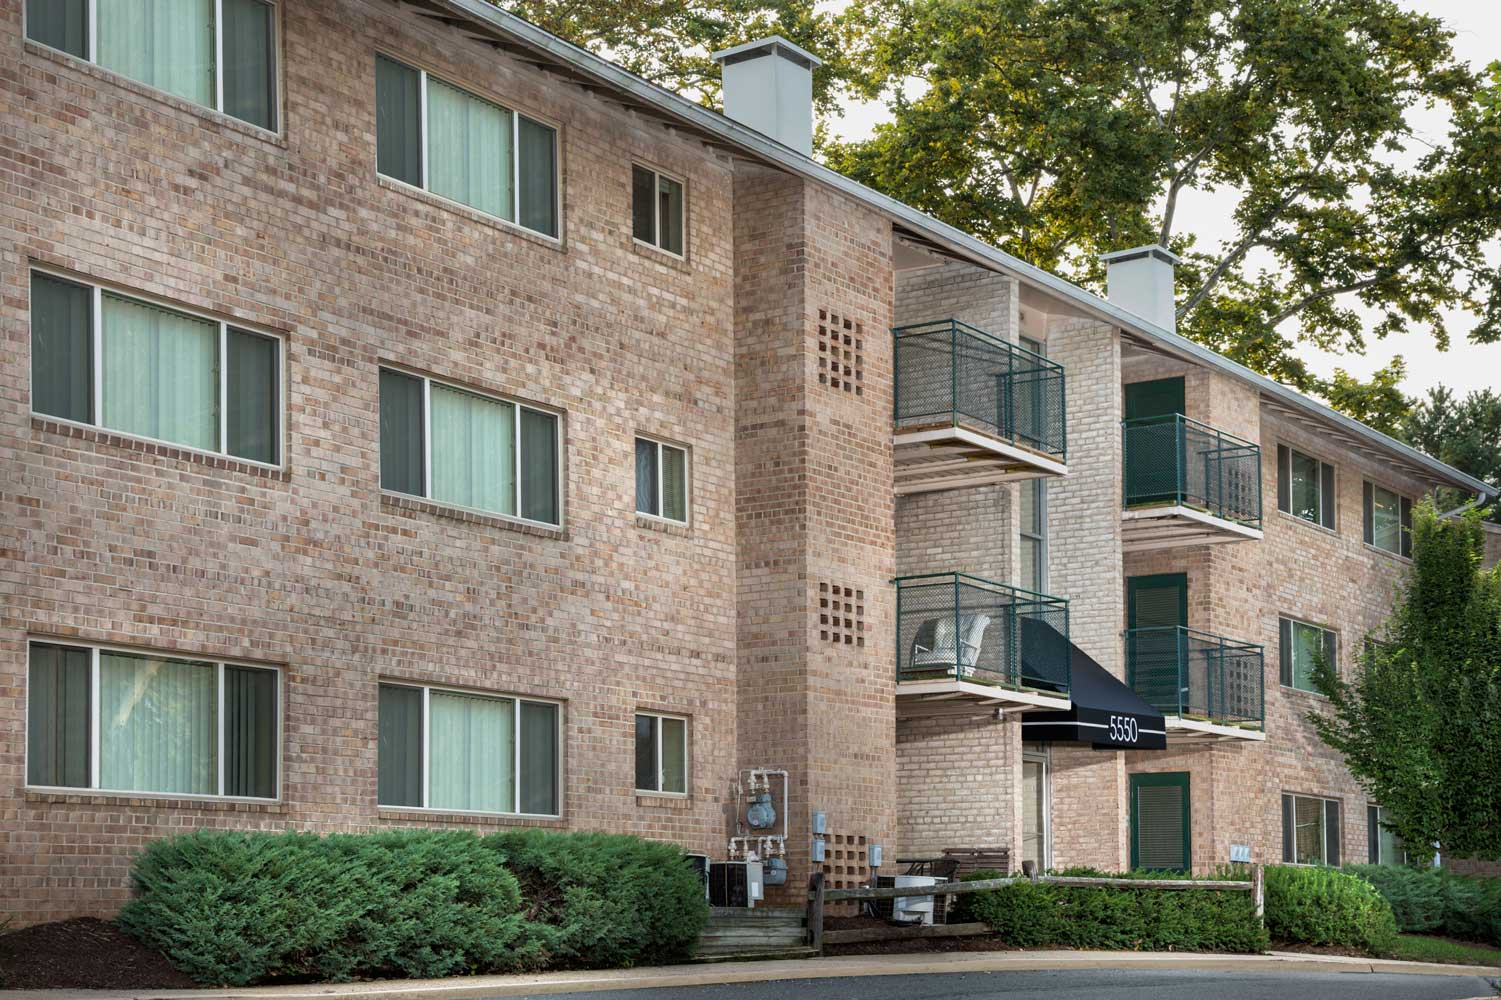 Garden style building at Woodmont Park Apartments in Alexandria, VA